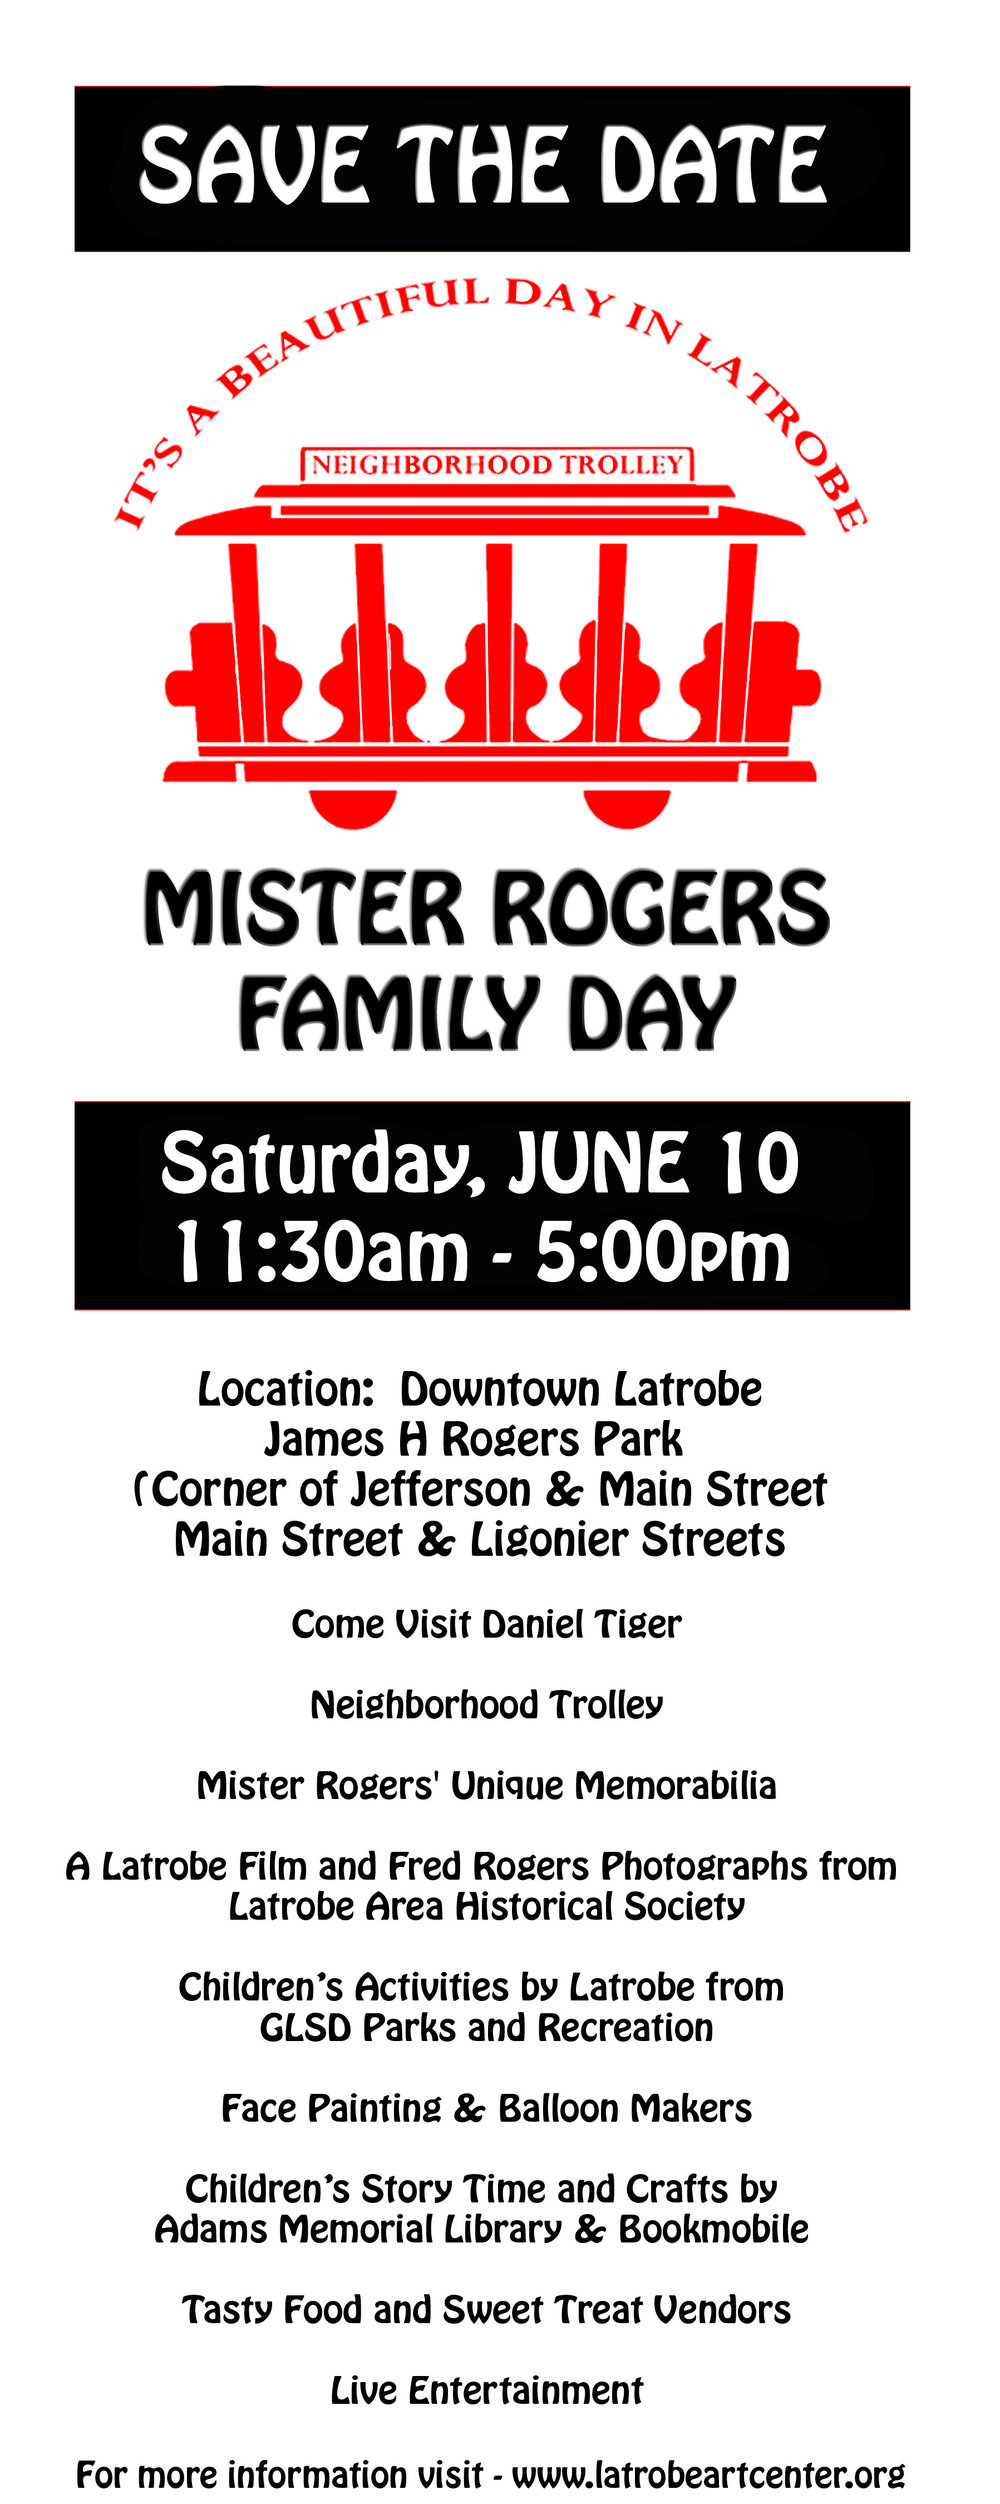 Mr Rogers Family Day, Latrobe Art Center